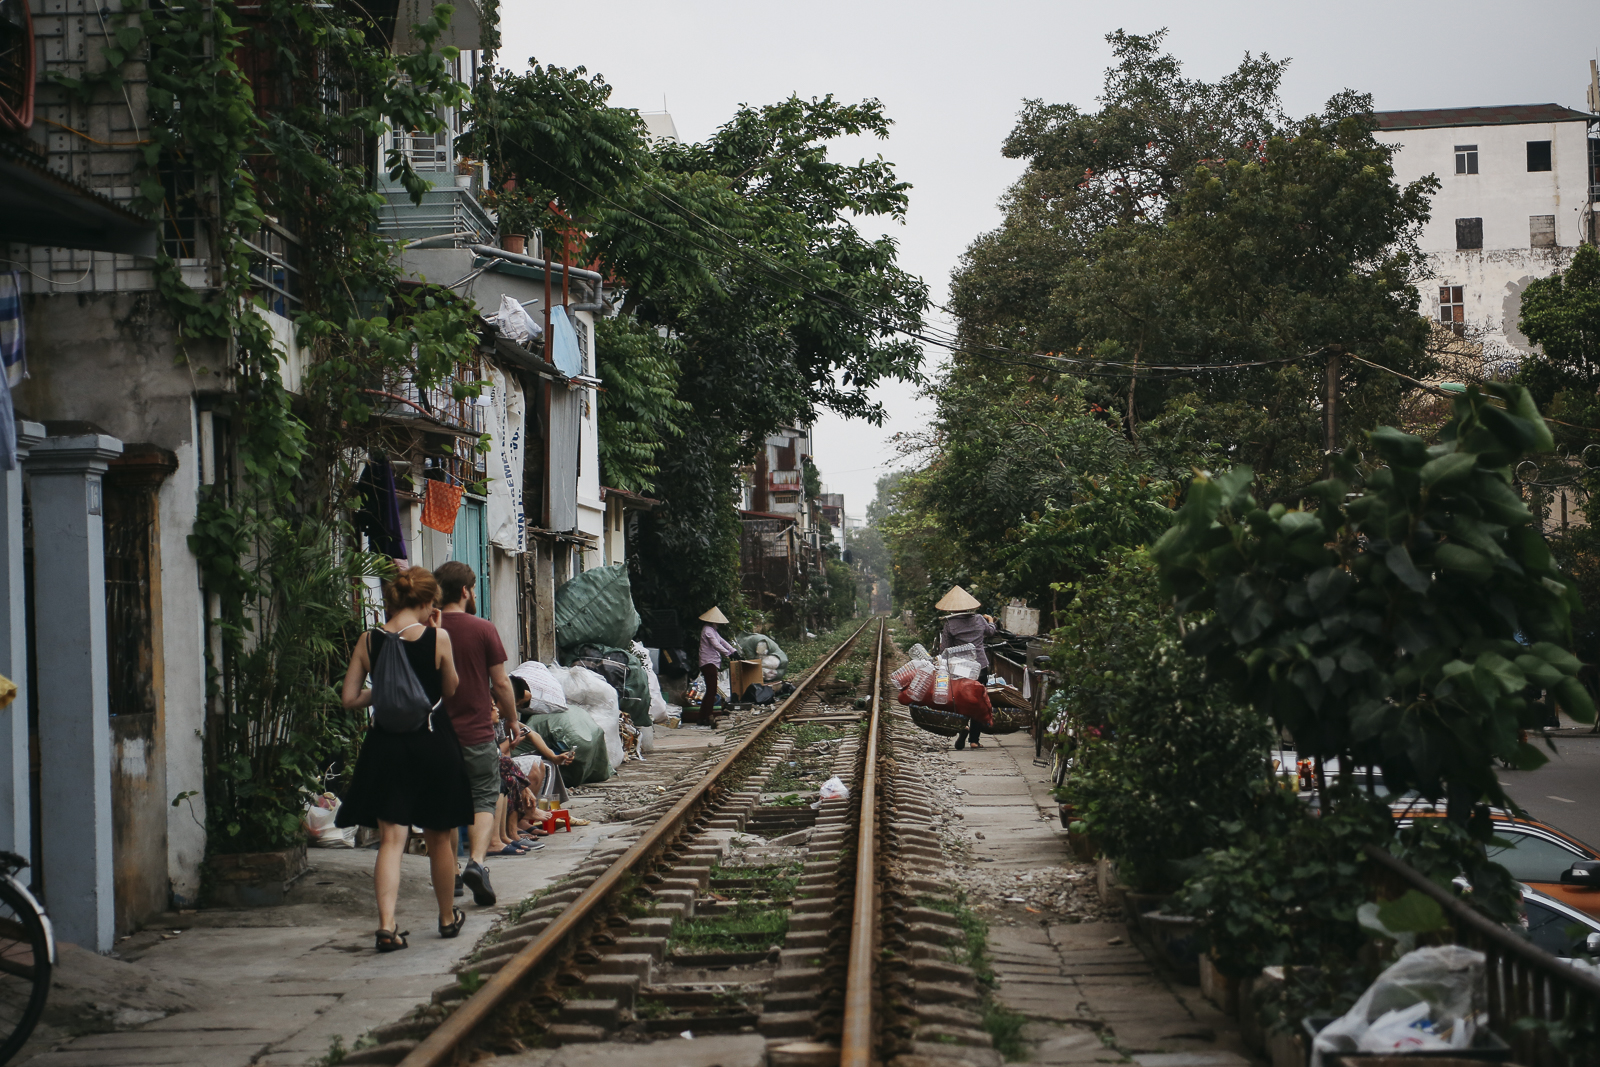 Hanoi_20, Hanoi, Vietnam, Photo and Travel Diary by The Curly Head, Photography by Amelie Niederbuchner,